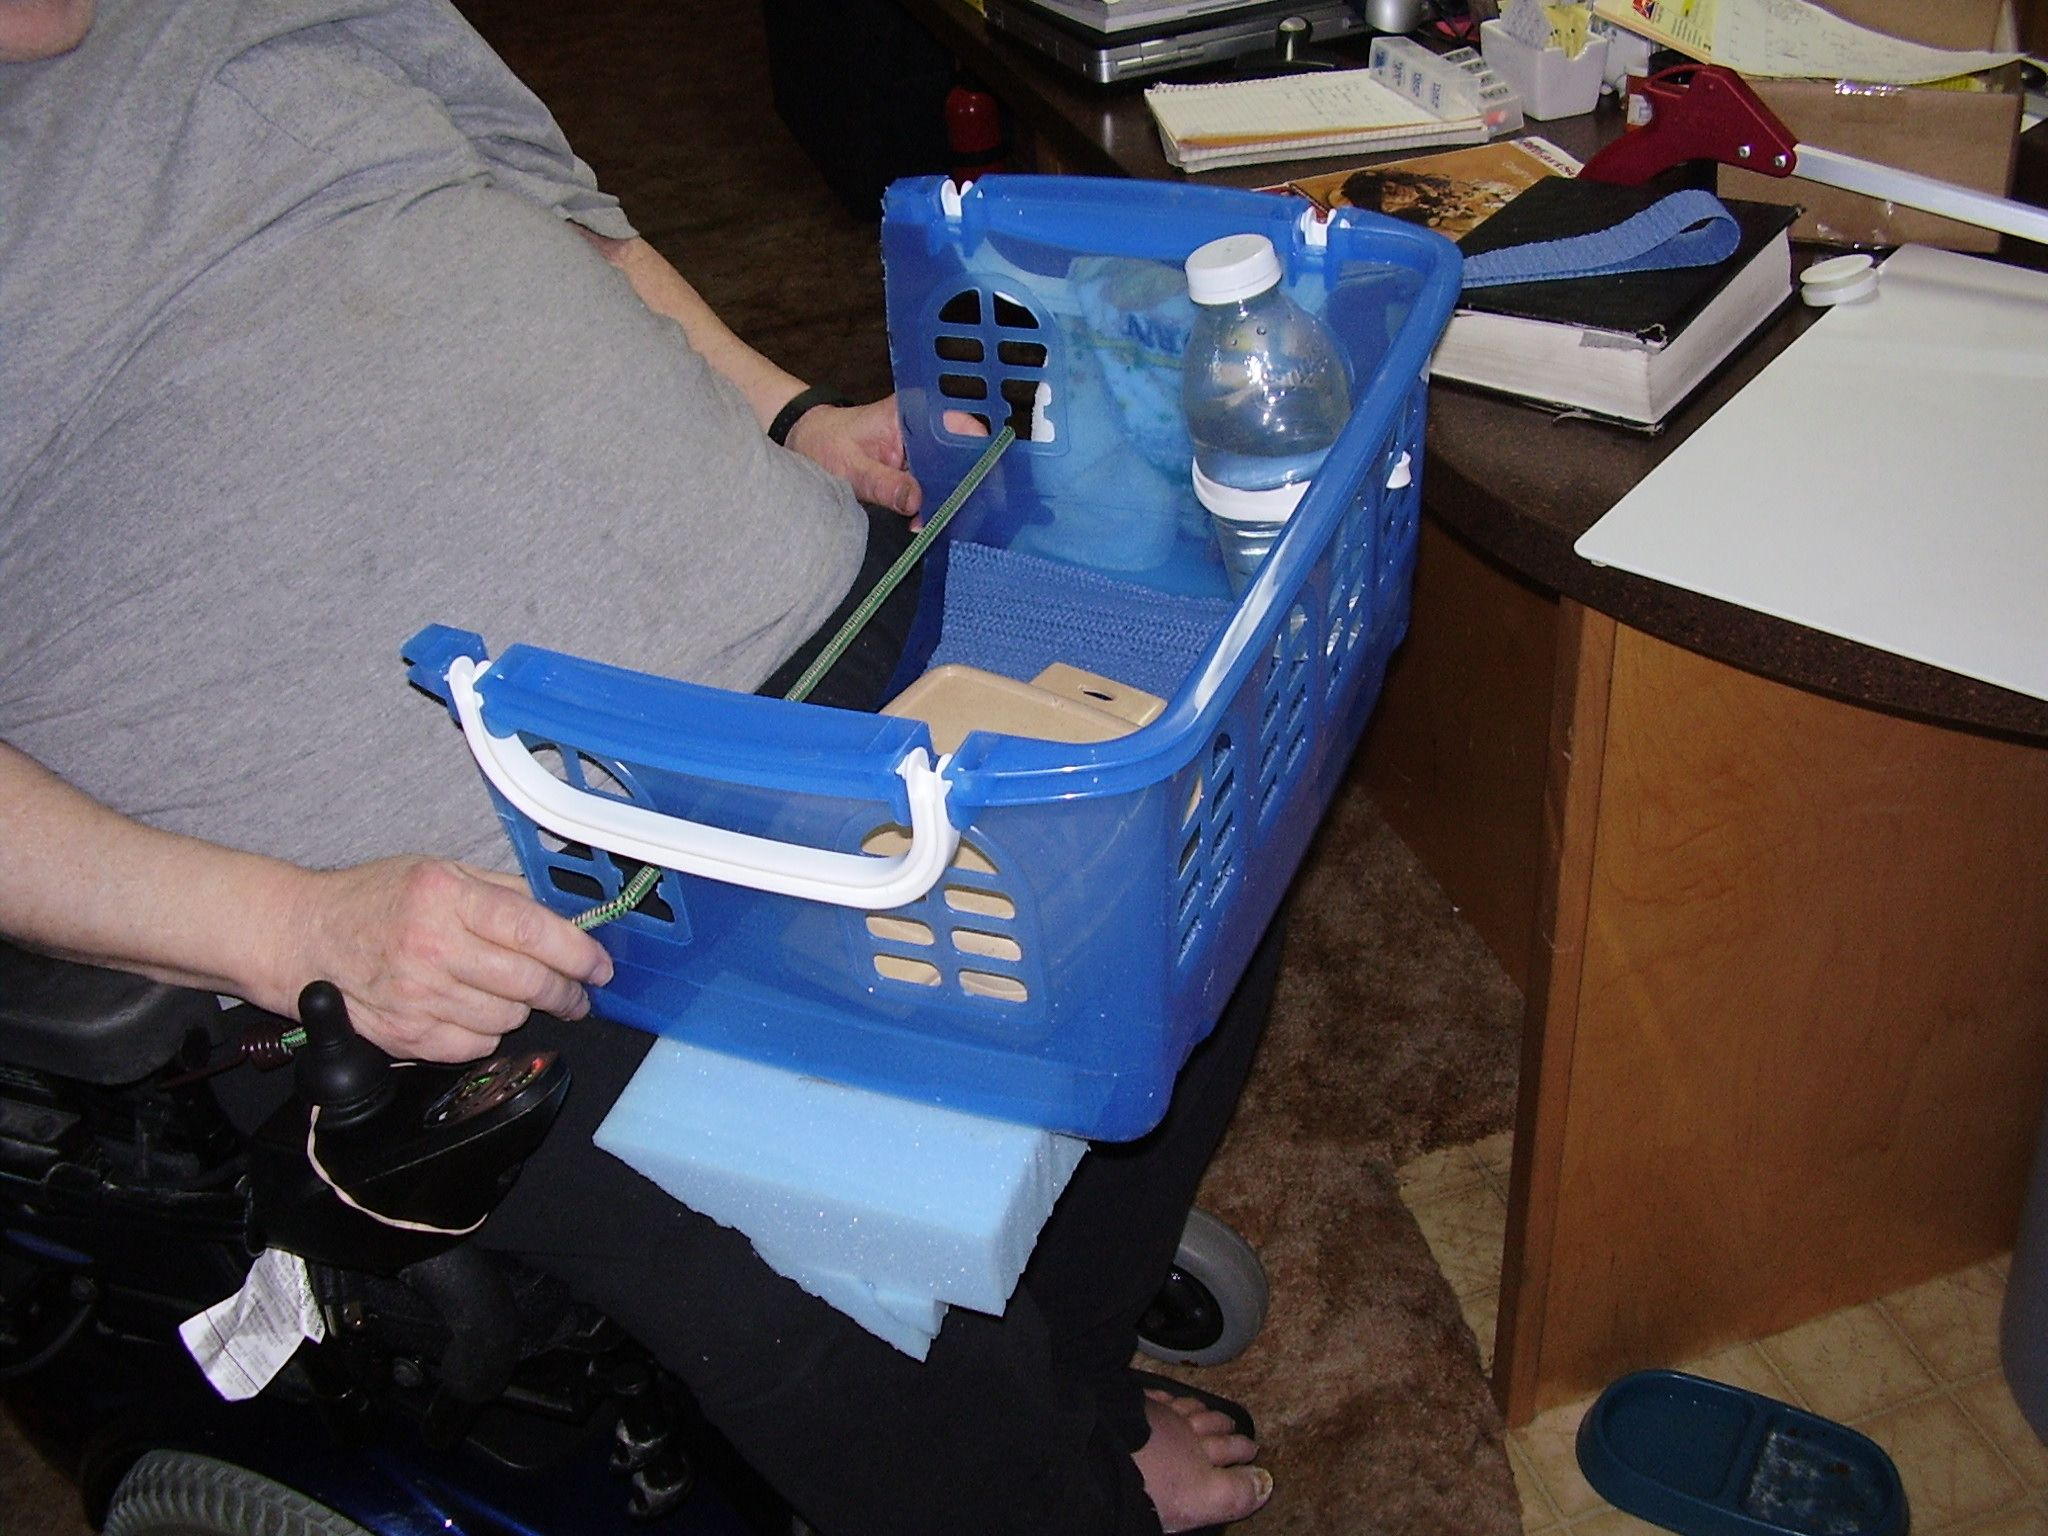 Adapted Basket Used As Carrying Tray For Power Wheelchair With Cutaway Front For Access And